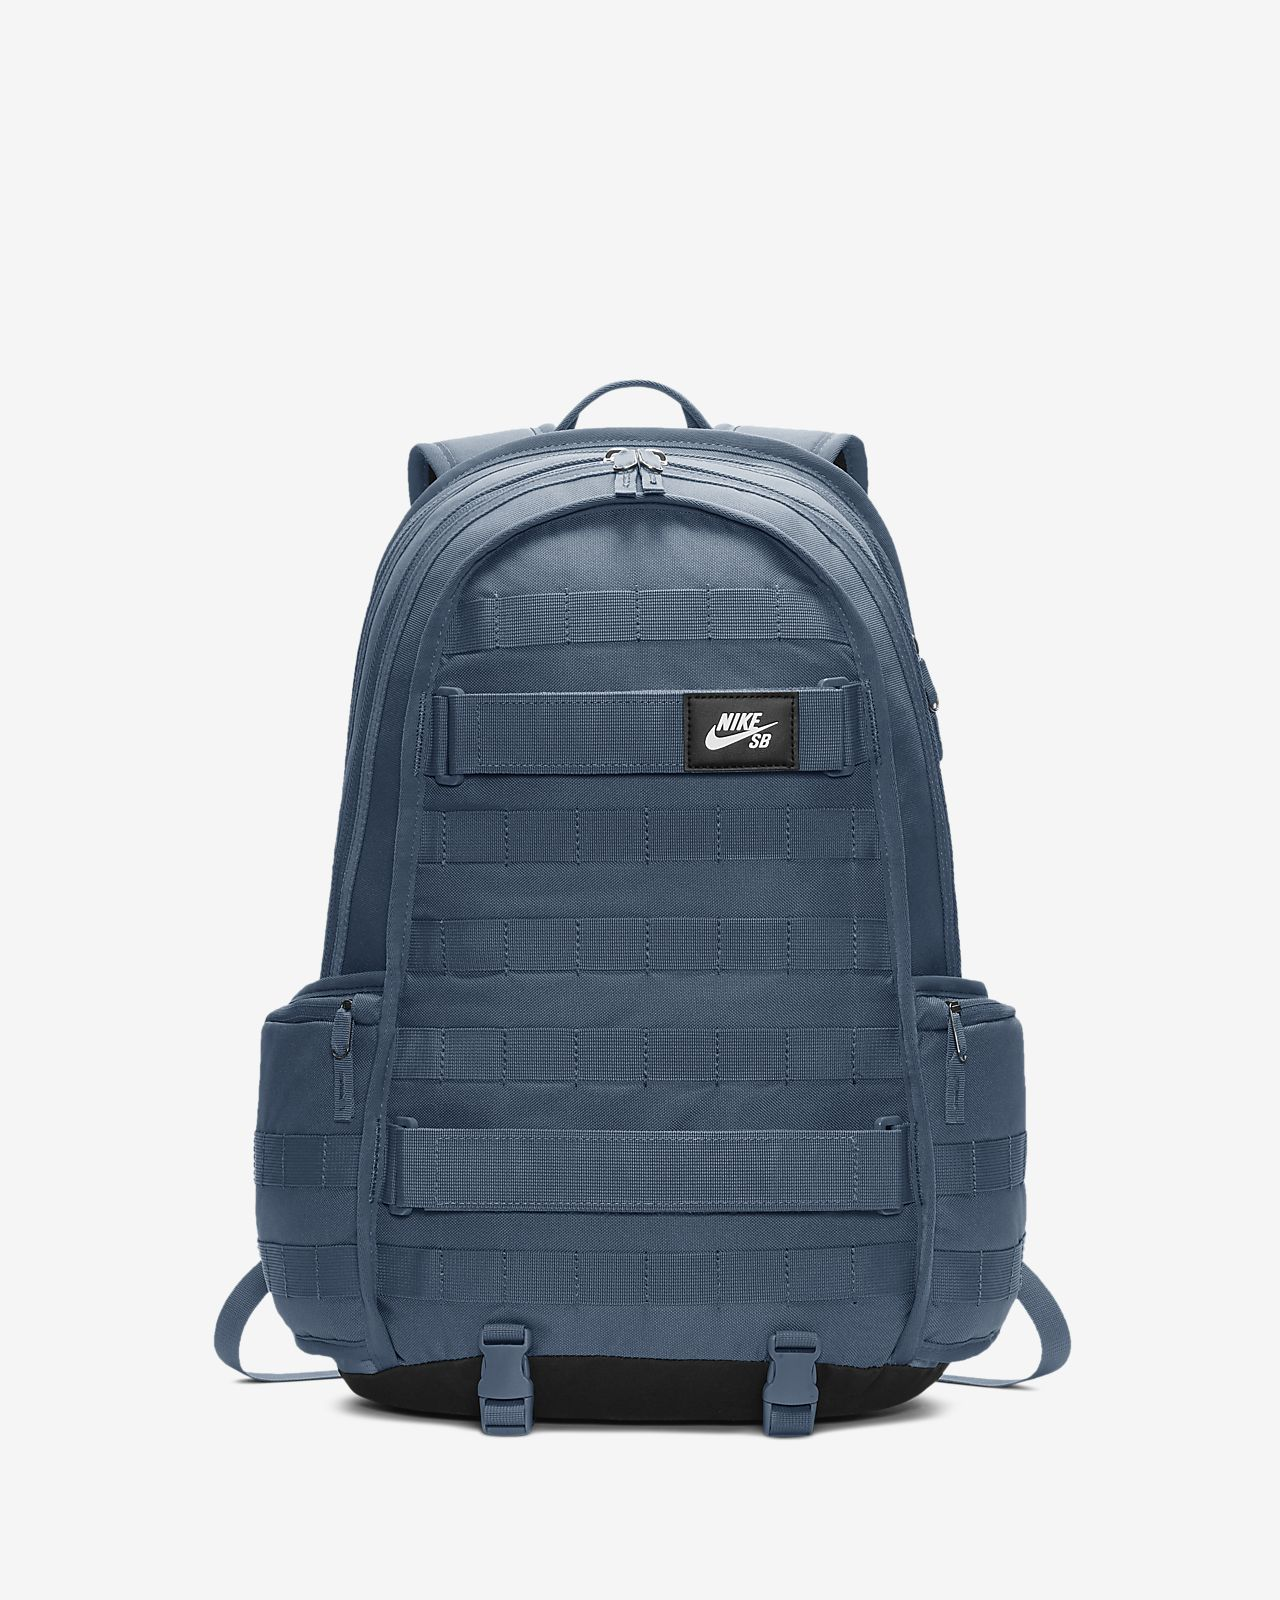 2d016557bb Low Resolution Nike SB RPM Skateboarding Backpack Nike SB RPM Skateboarding  Backpack